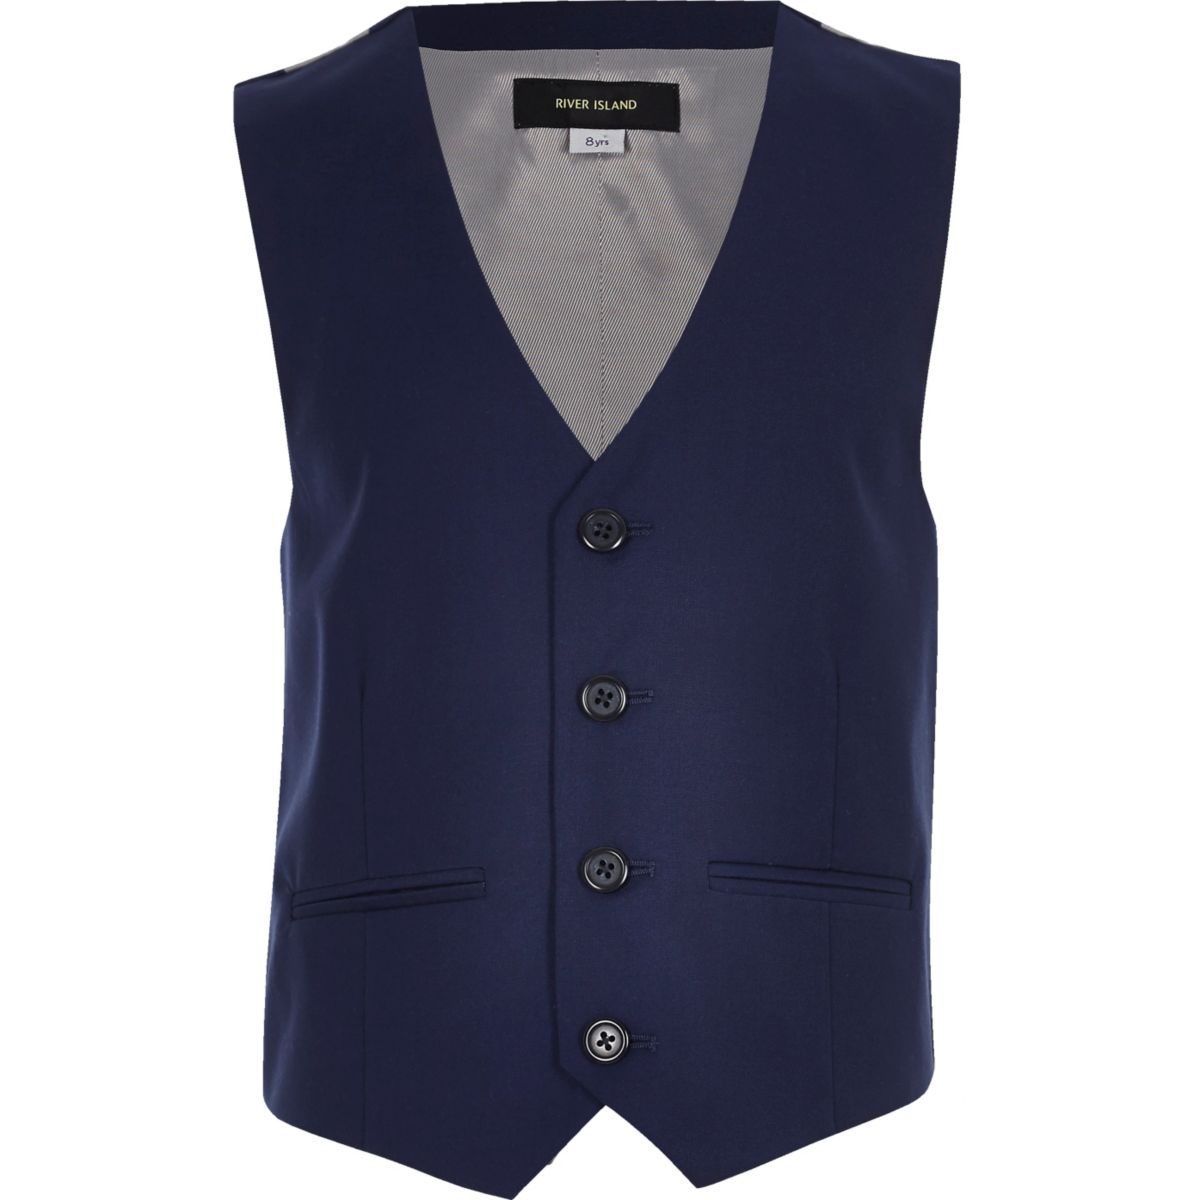 Boys bright blue suit vest